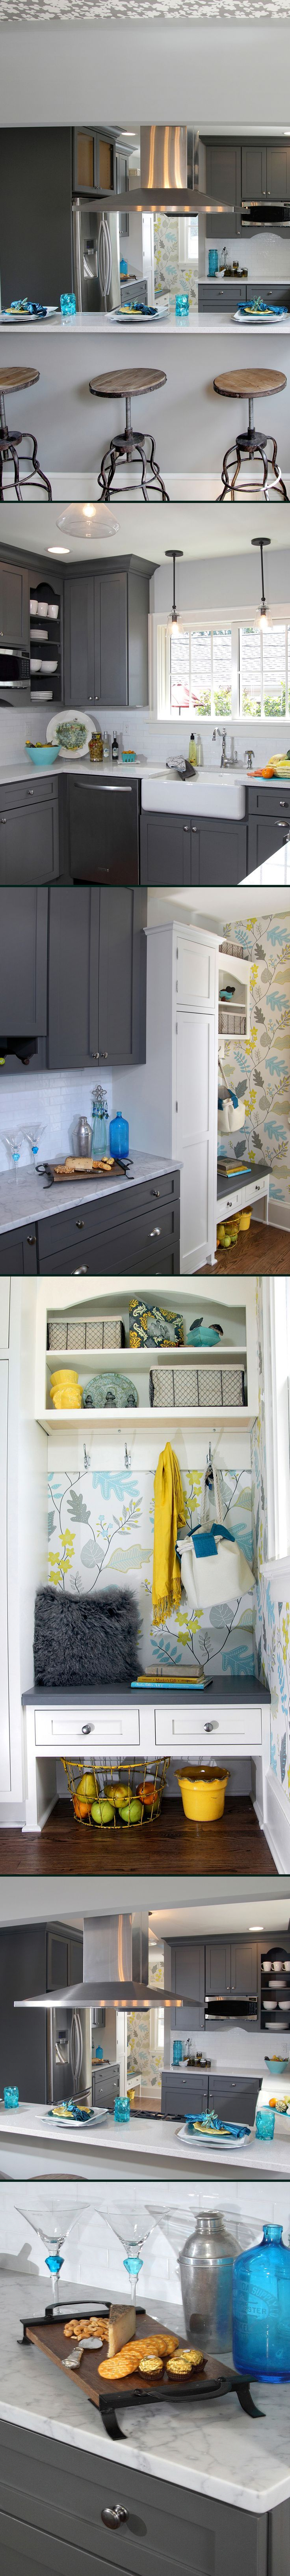 #Gray and #White Transitional #Kitchen Design with Teal Blue and Yellow Accents…